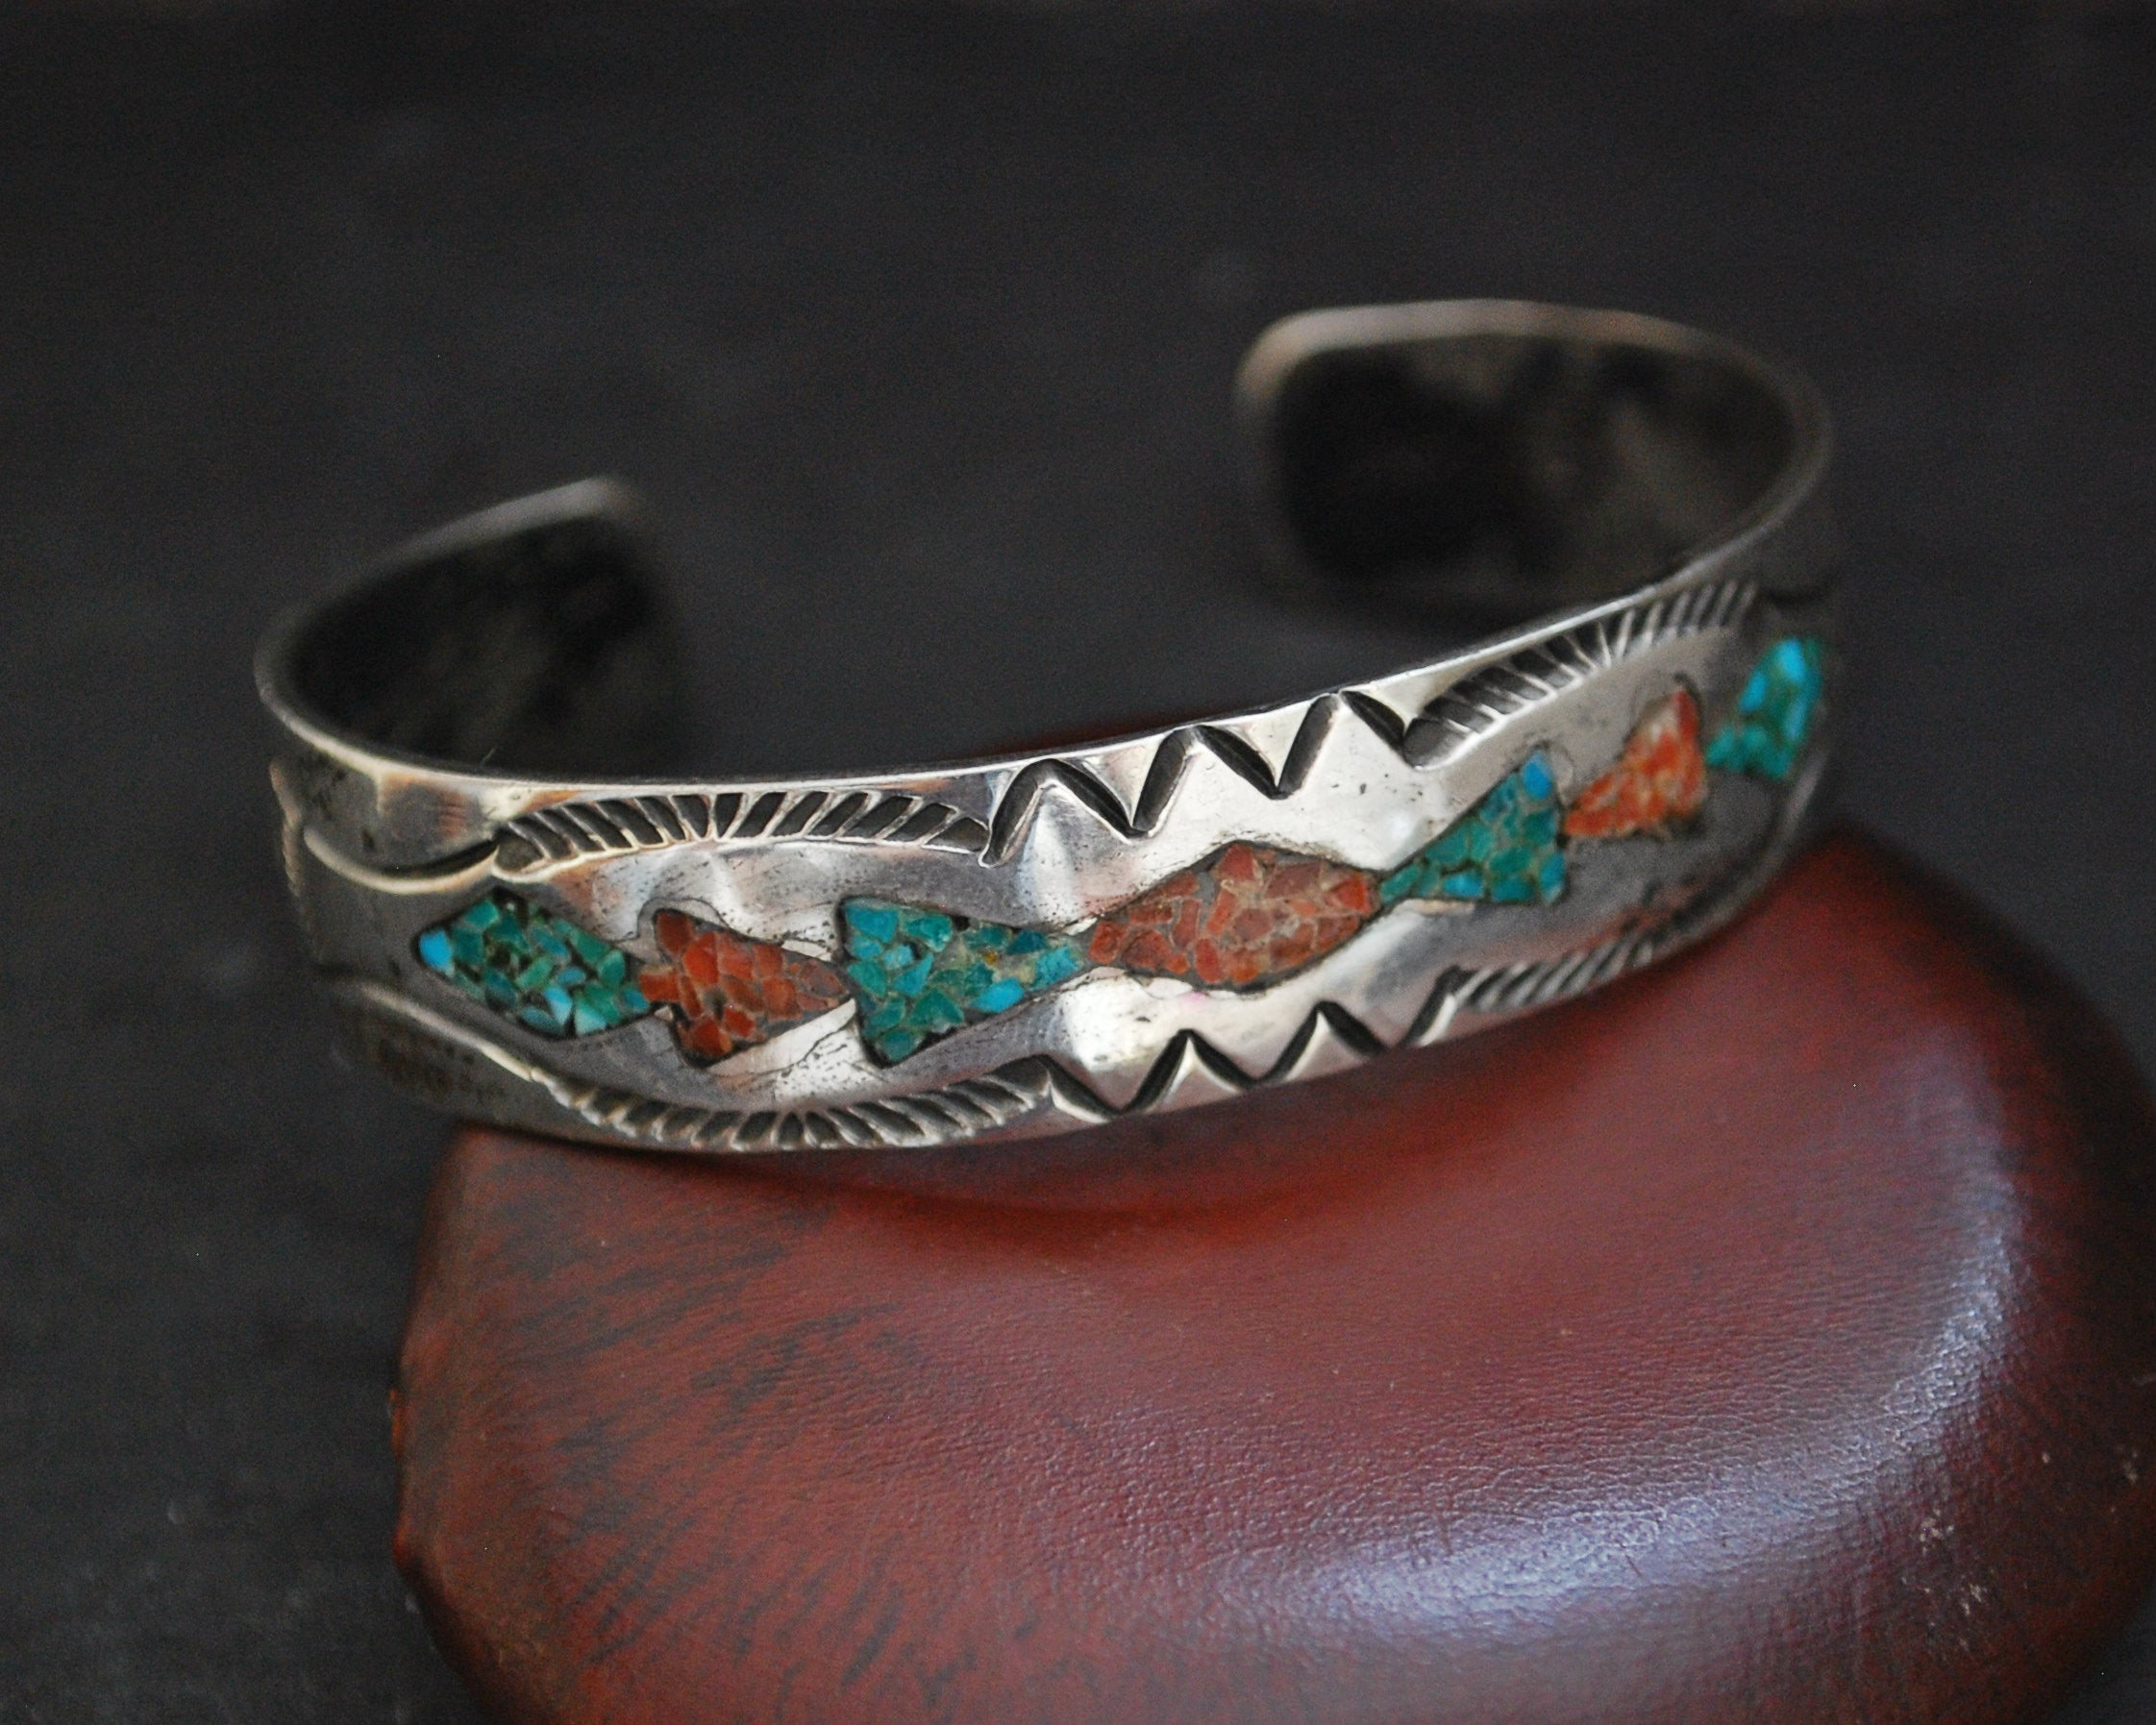 Navajo Turquoise Coral Inlay Cuff Bracelet - For Small Wrist